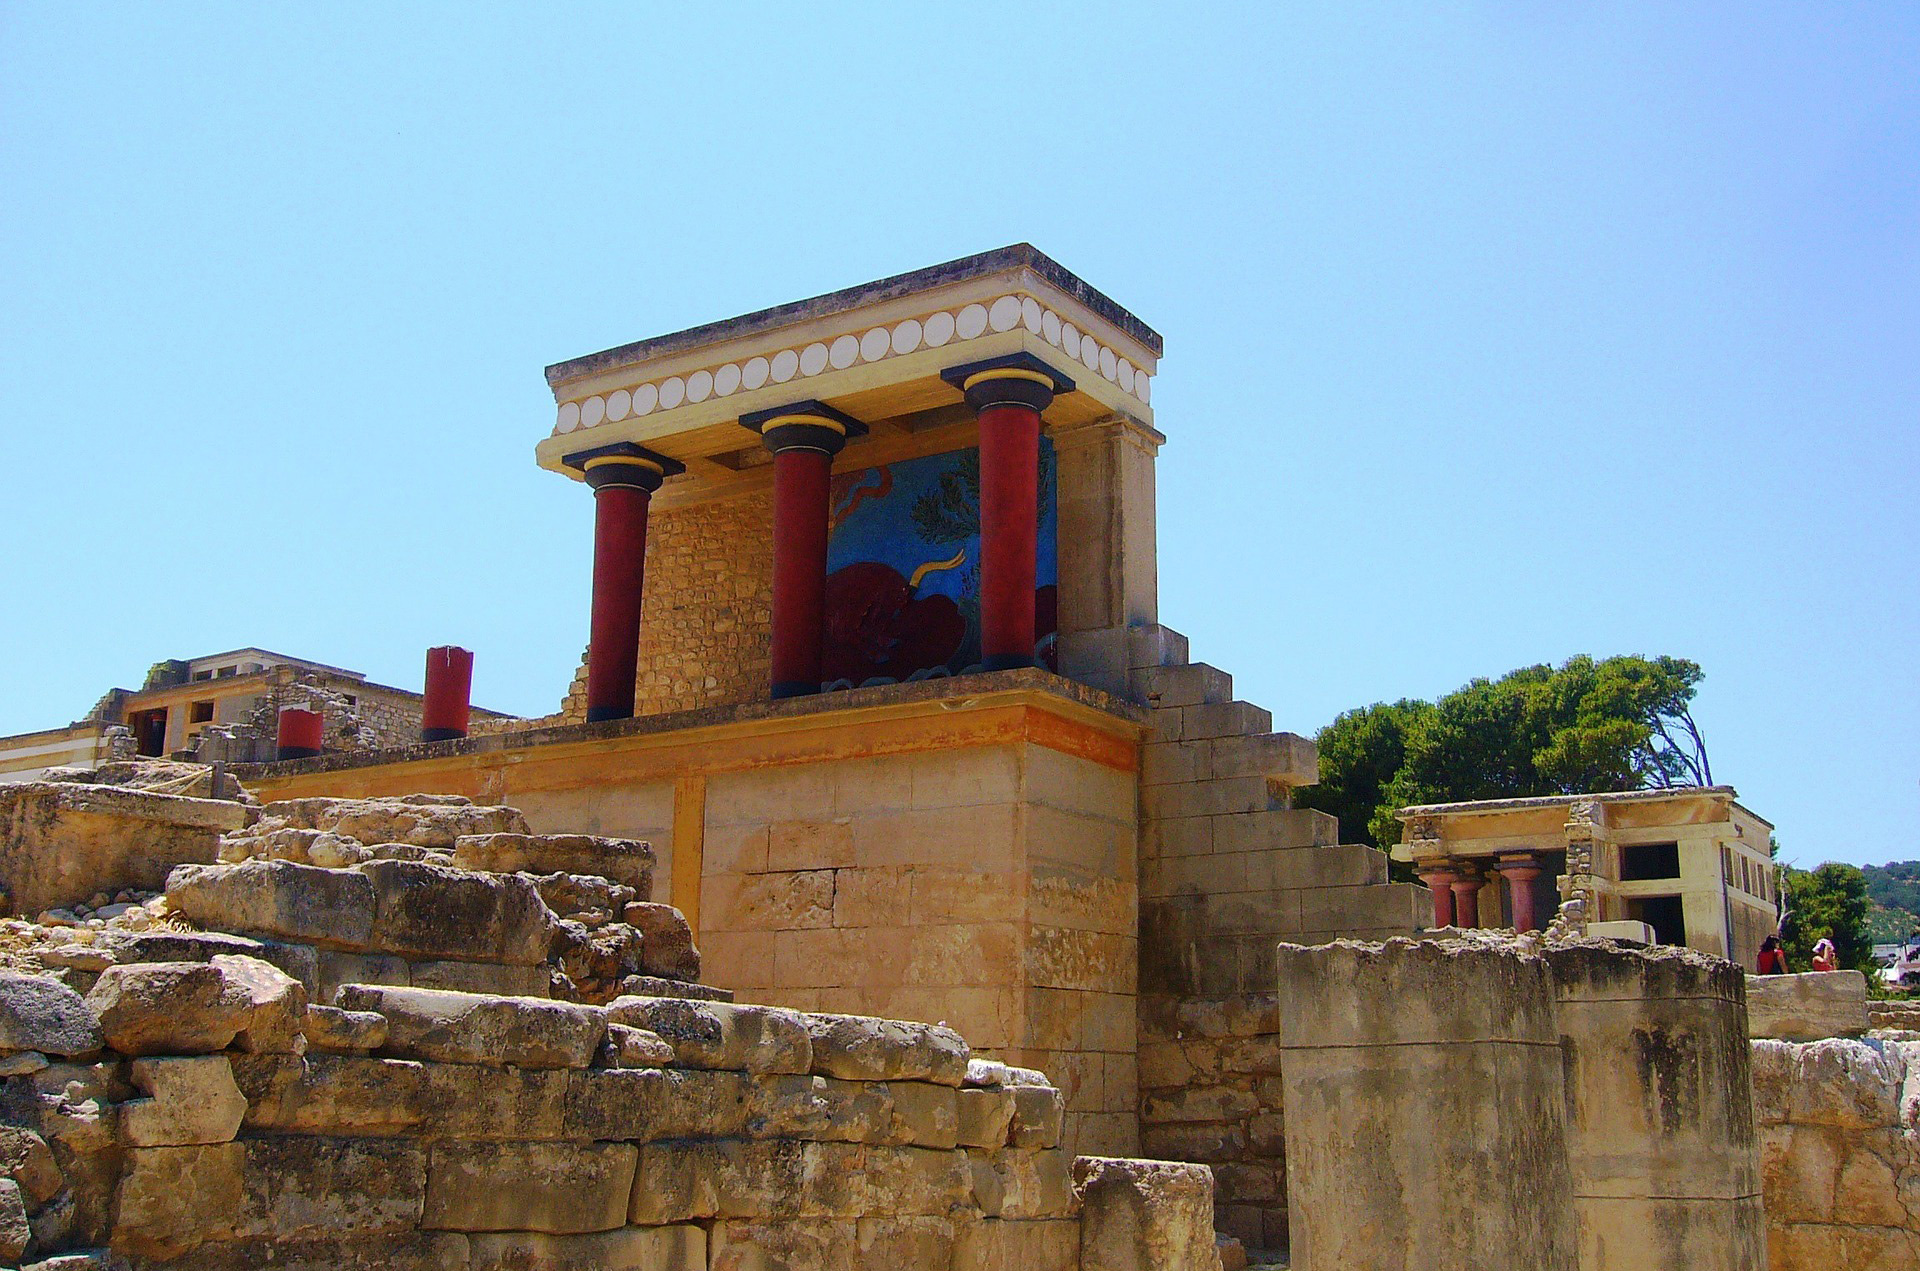 Crete Villas - Villas Kalamaki Crete - Phaistos Villas Crete - Villas in Crete - Arismari Houses Crete - Crete Holiday Villas - Crete Matala Villas - South Crete Villas - Crete Holiday Houses - Traditional Villas Crete